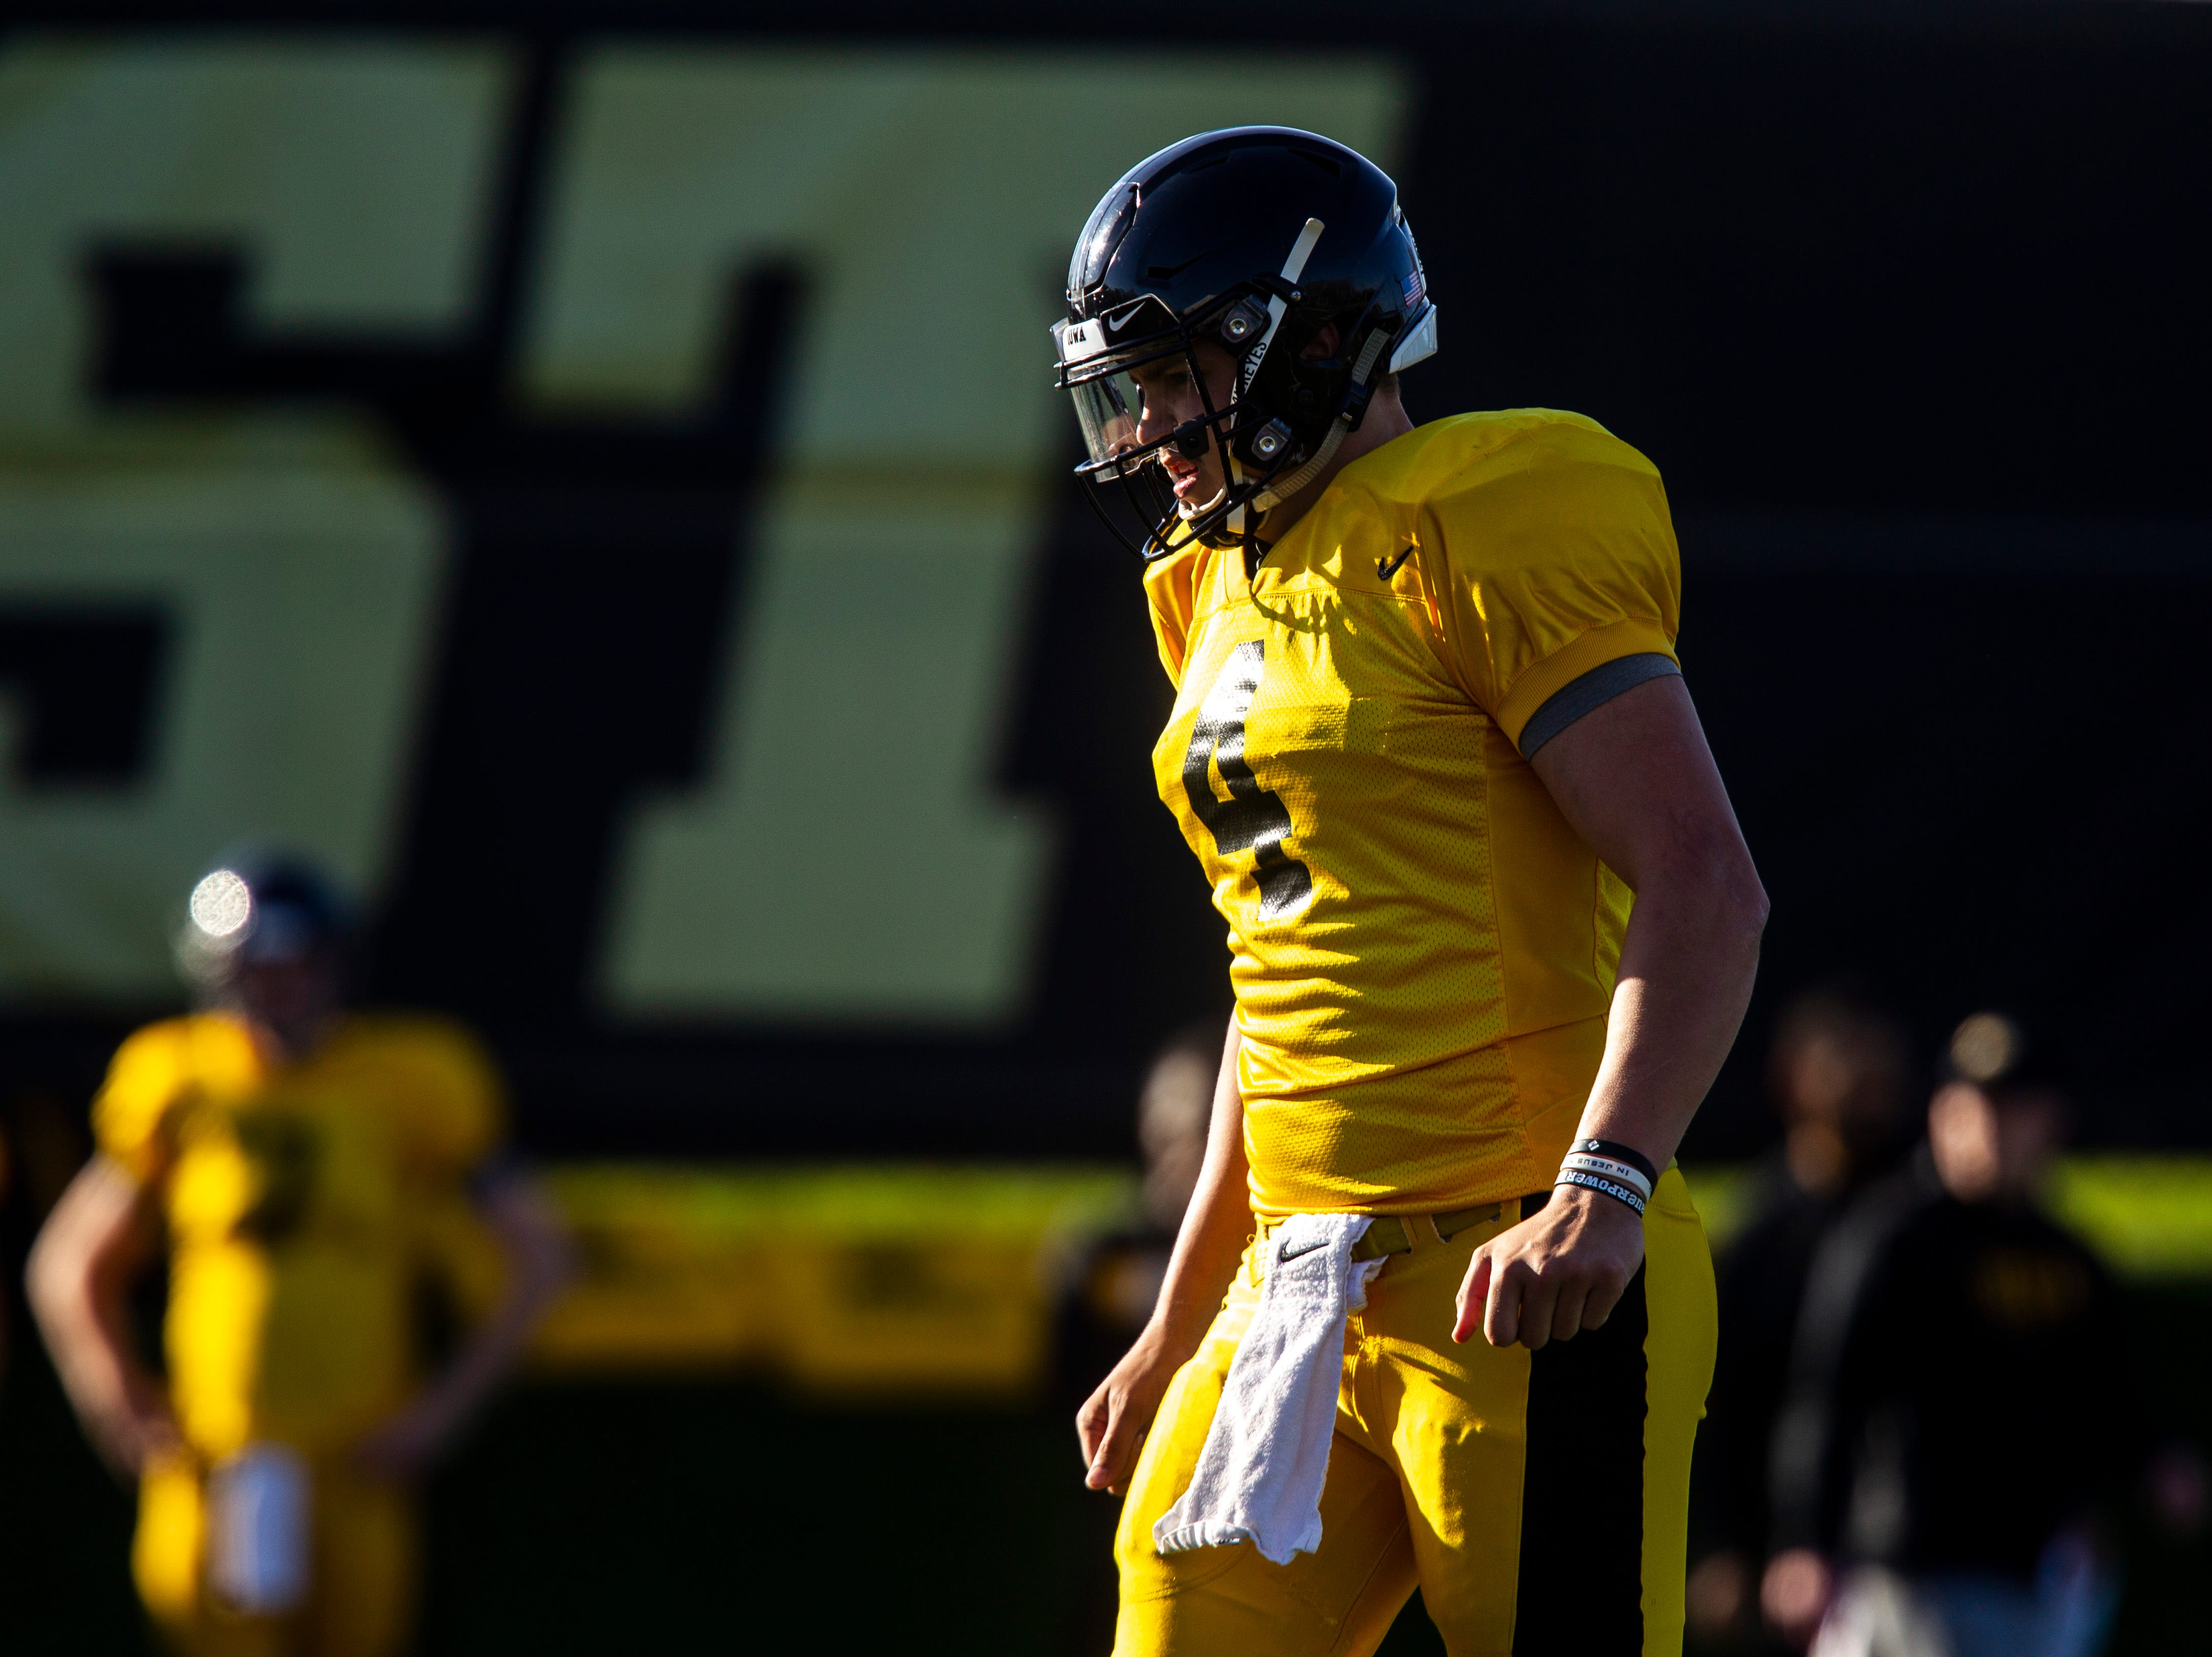 Iowa quarterback Nate Stanley walks up to the huddle during the final spring football practice, Friday, April 26, 2019, at the University of Iowa outdoor practice facility in Iowa City, Iowa.